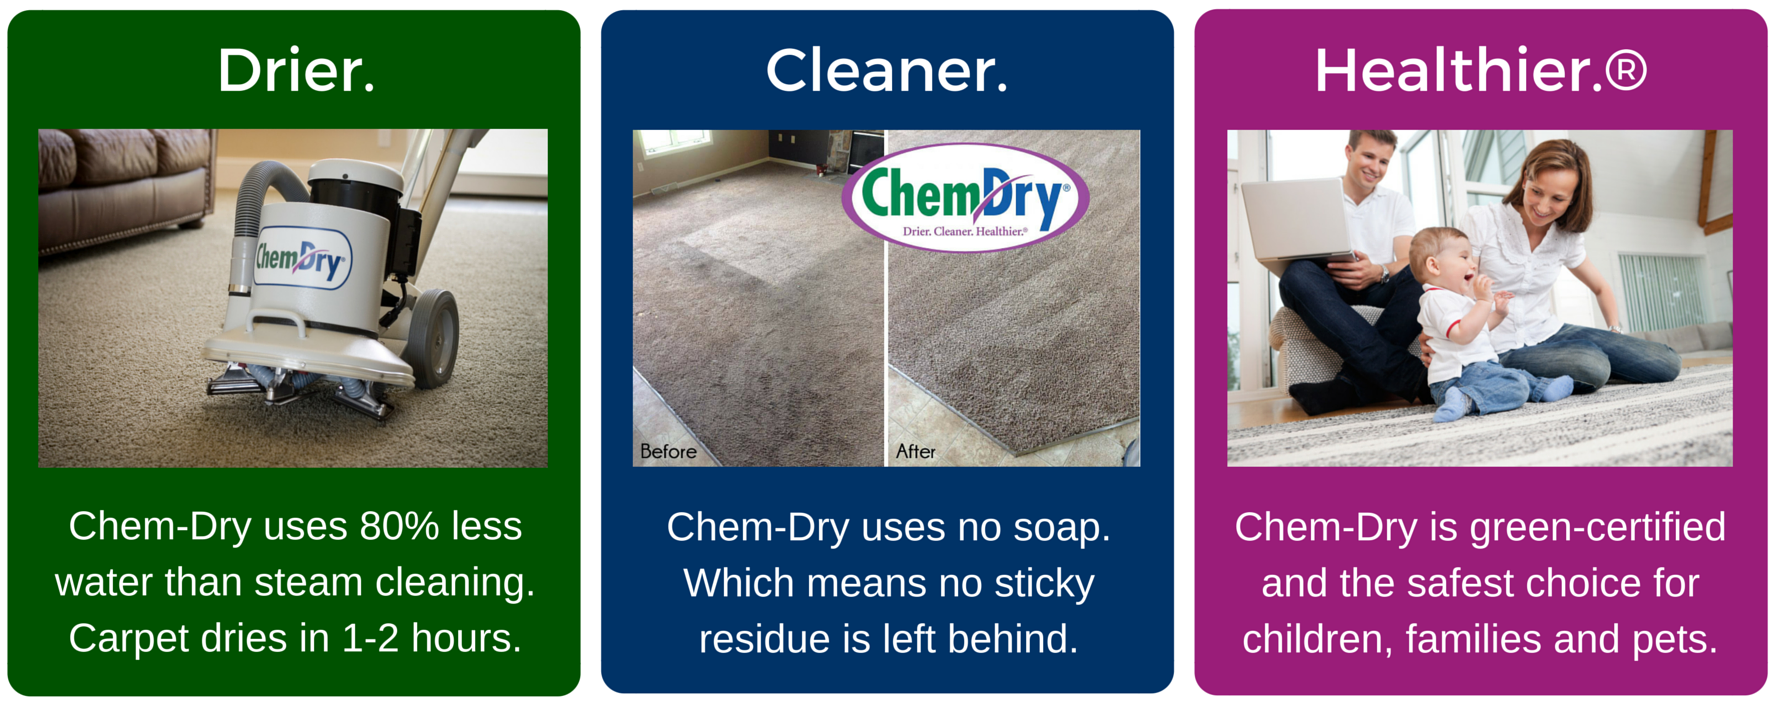 healthier cleaning